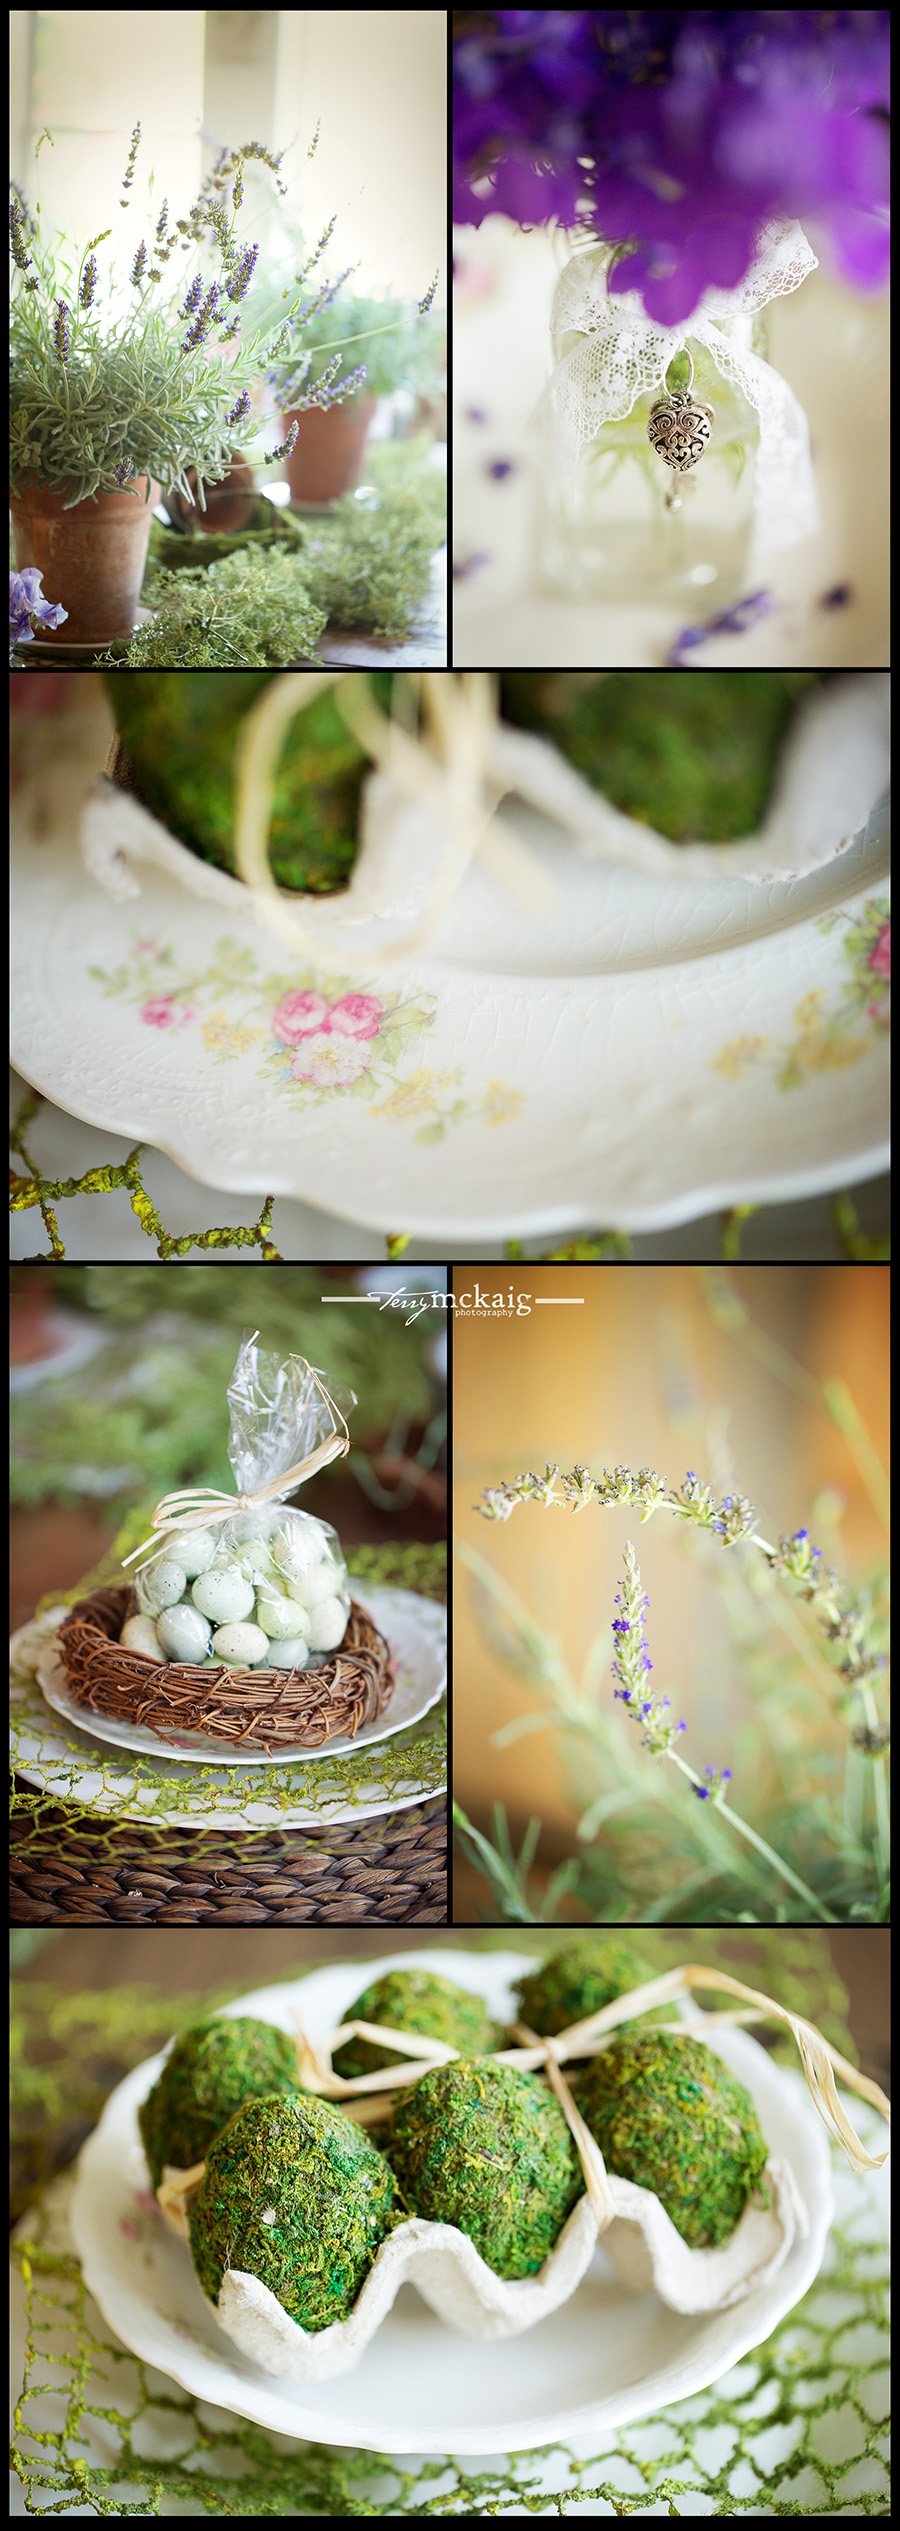 Easter Decor Terry McKaig Photography